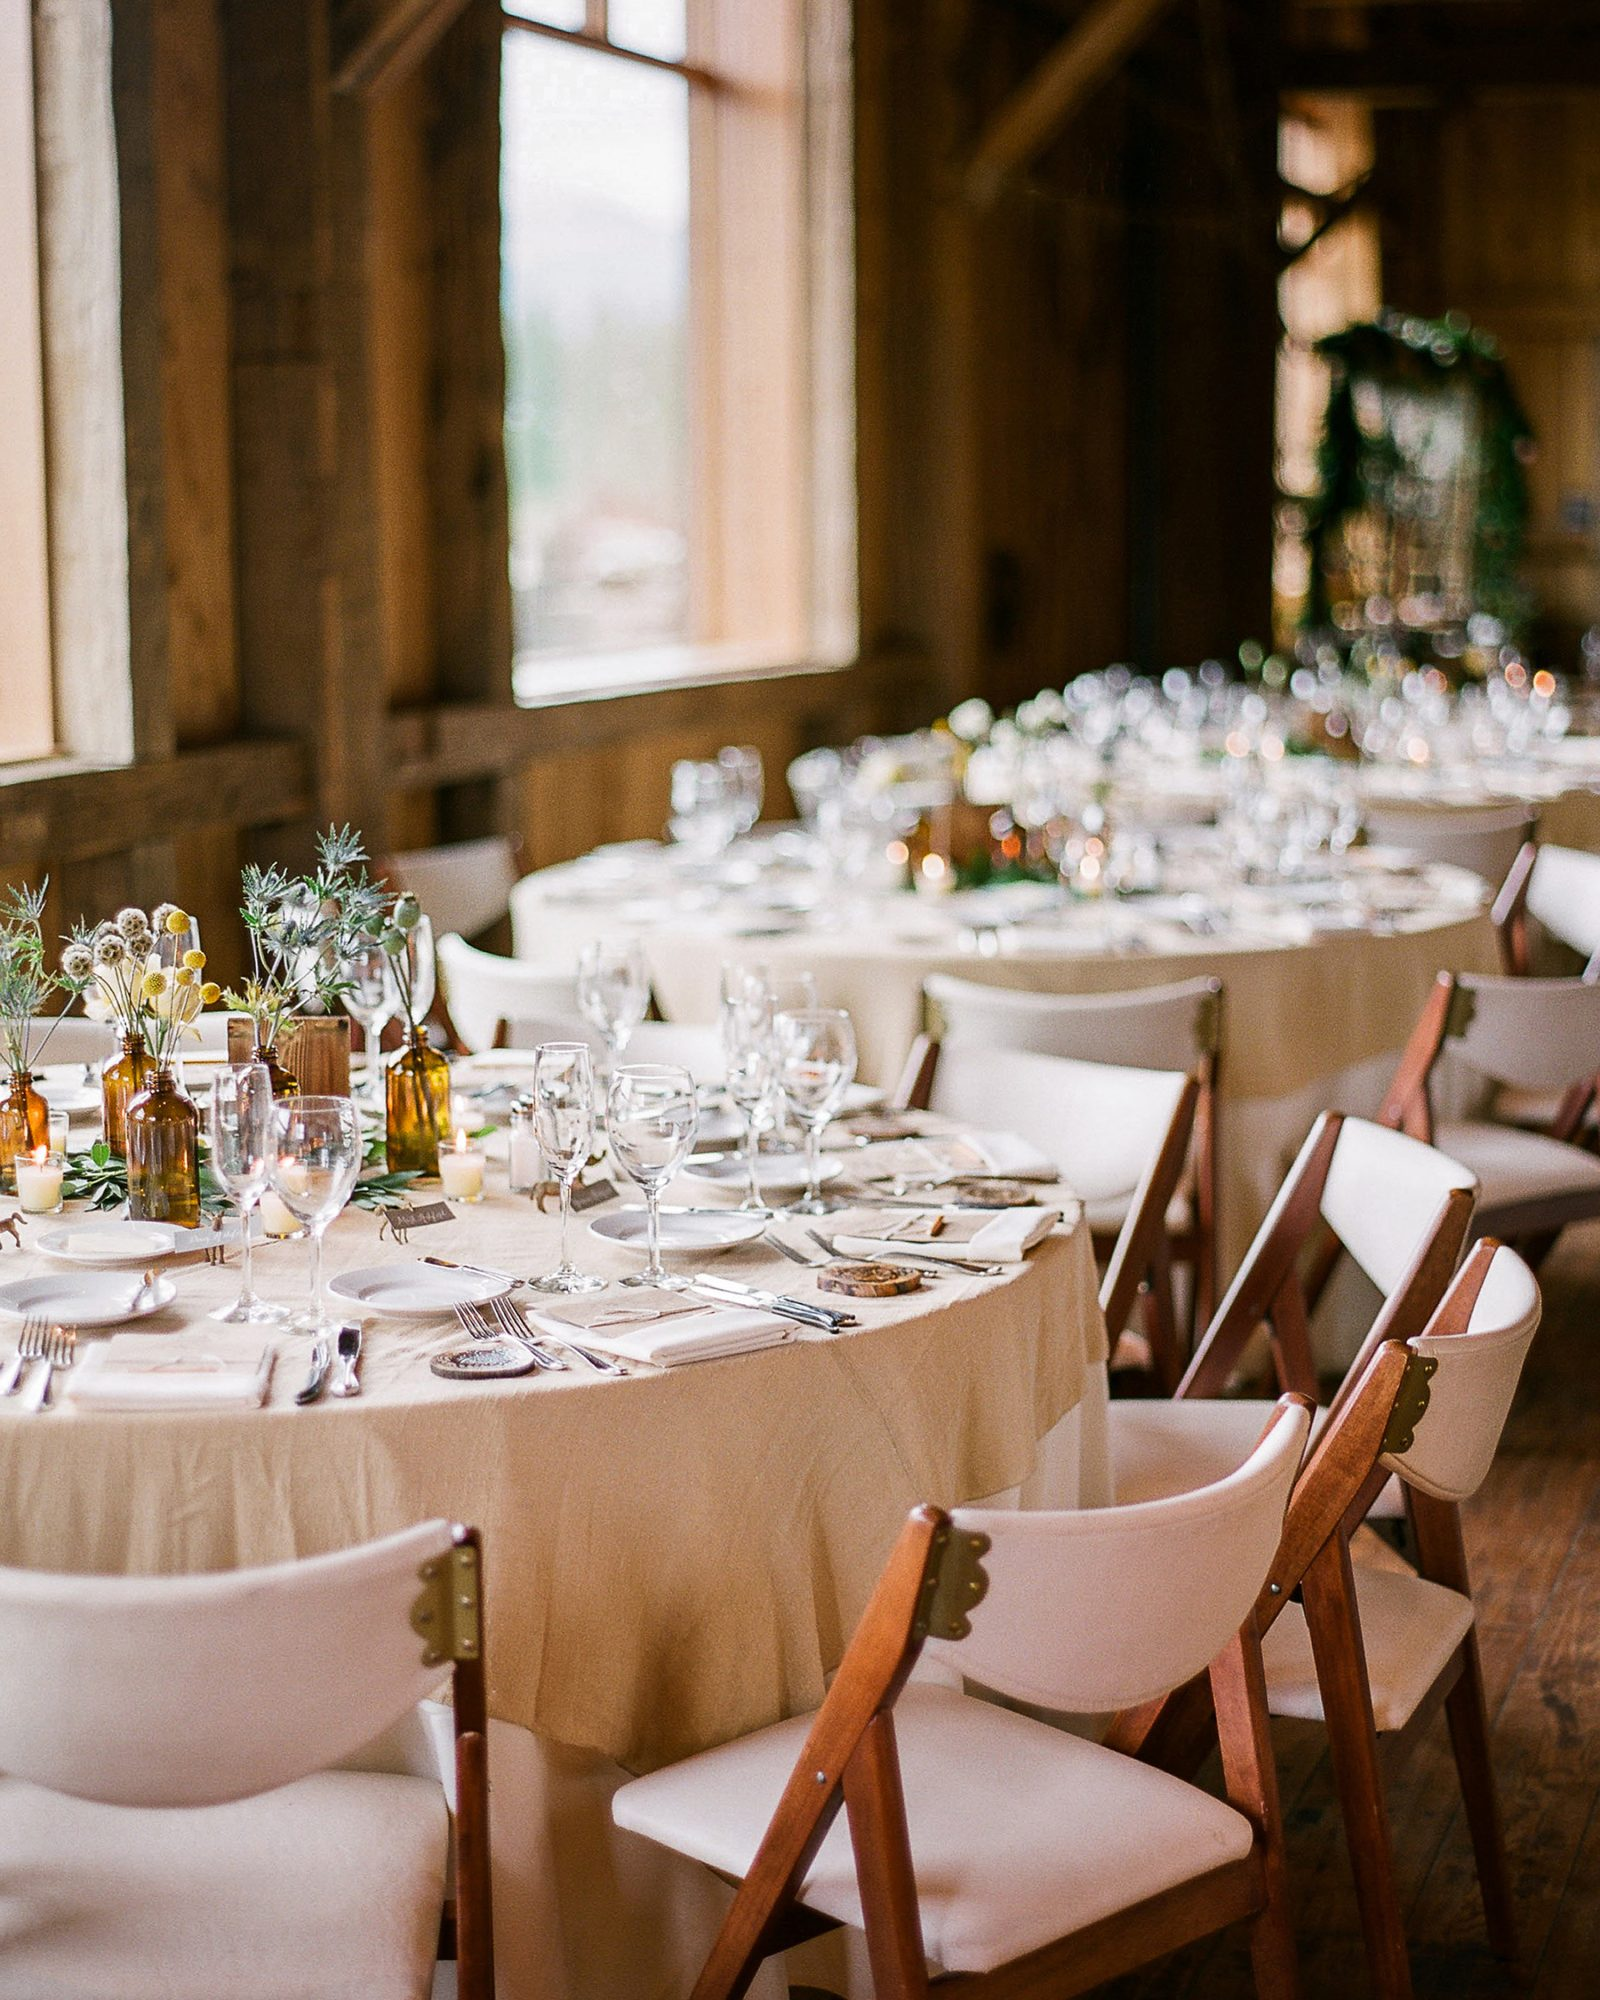 The Rustic Reception